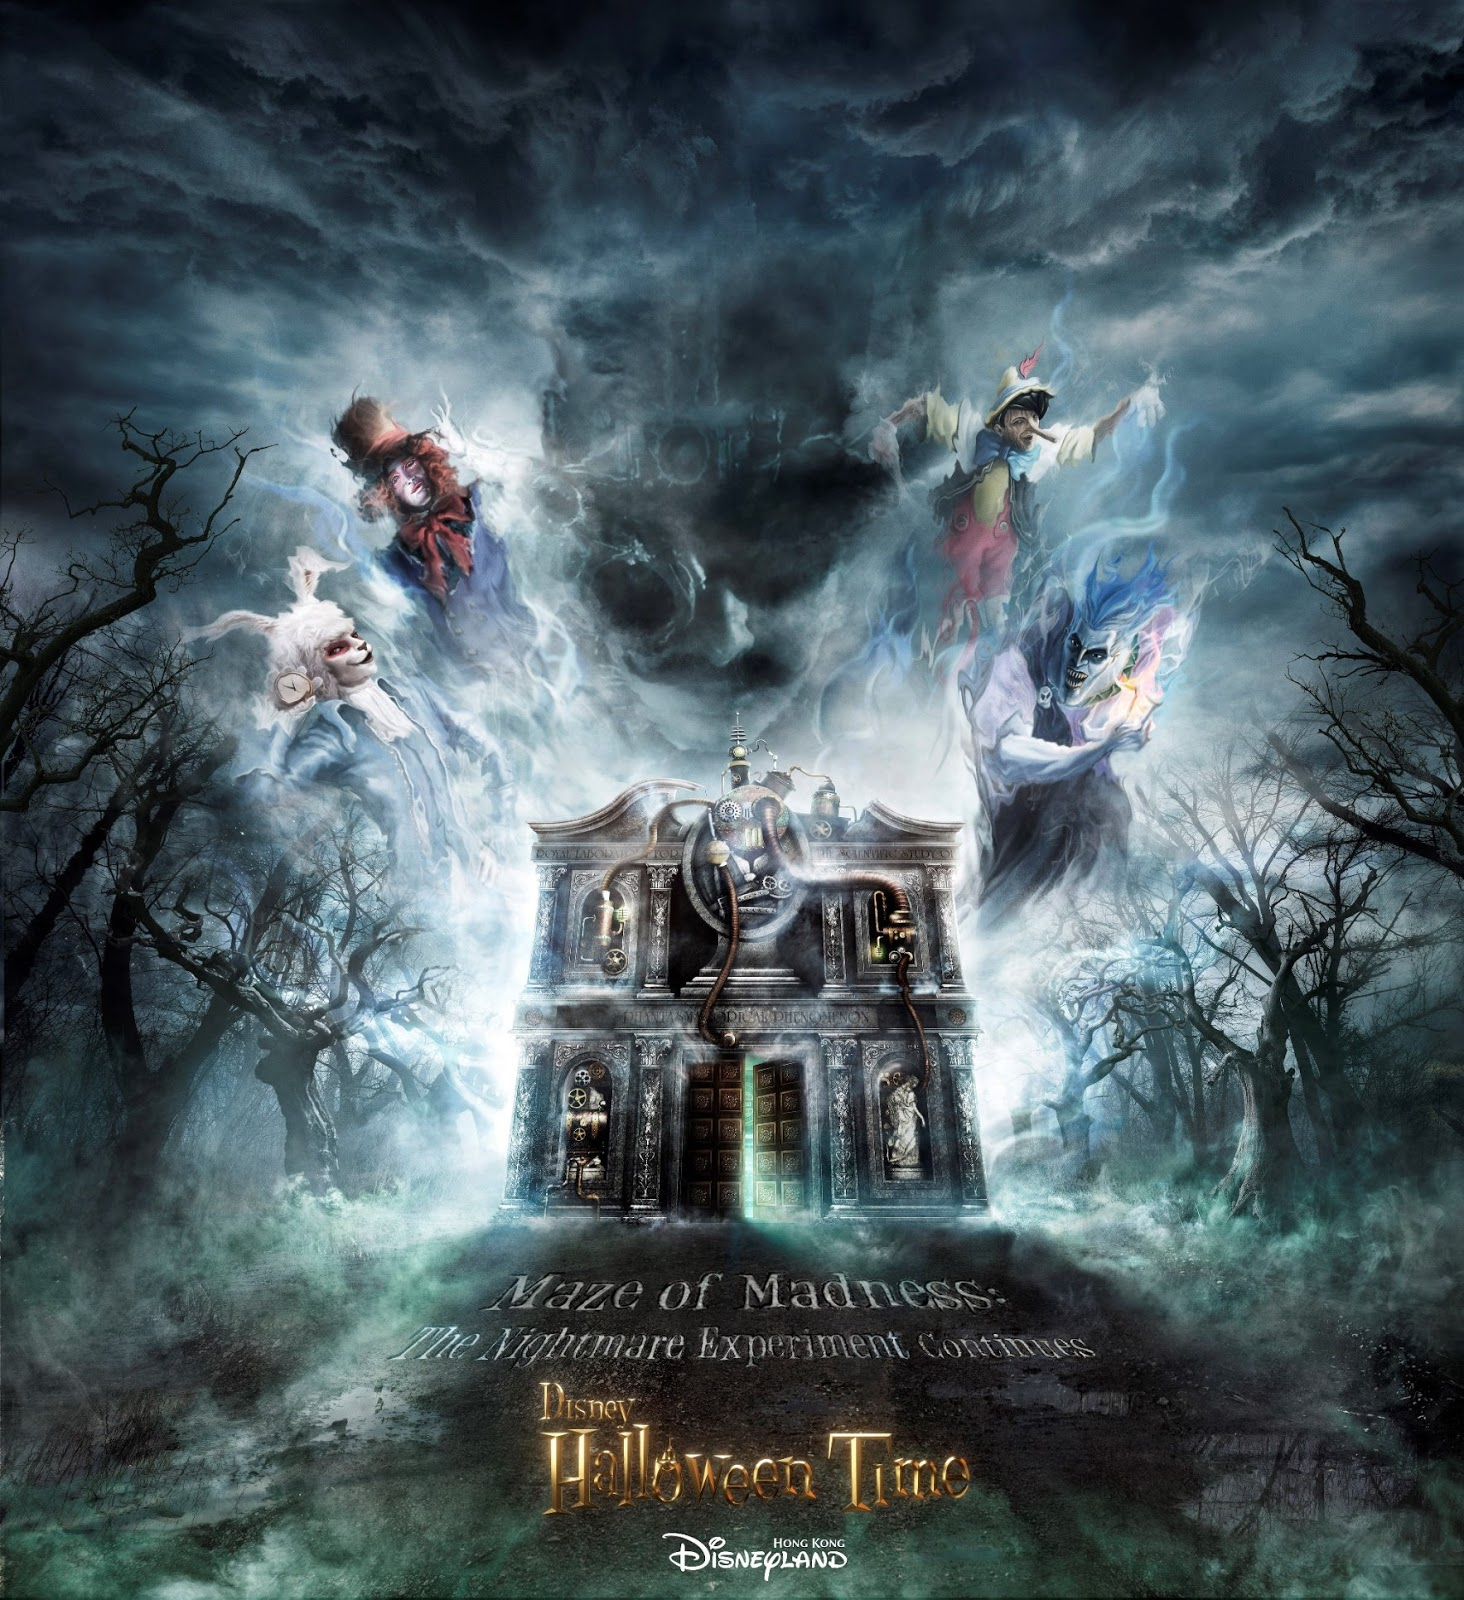 Hong Kong Disneyland Halloween Time 2020 Mazes The Nightmare Experiment | Disney Wiki | Fandom